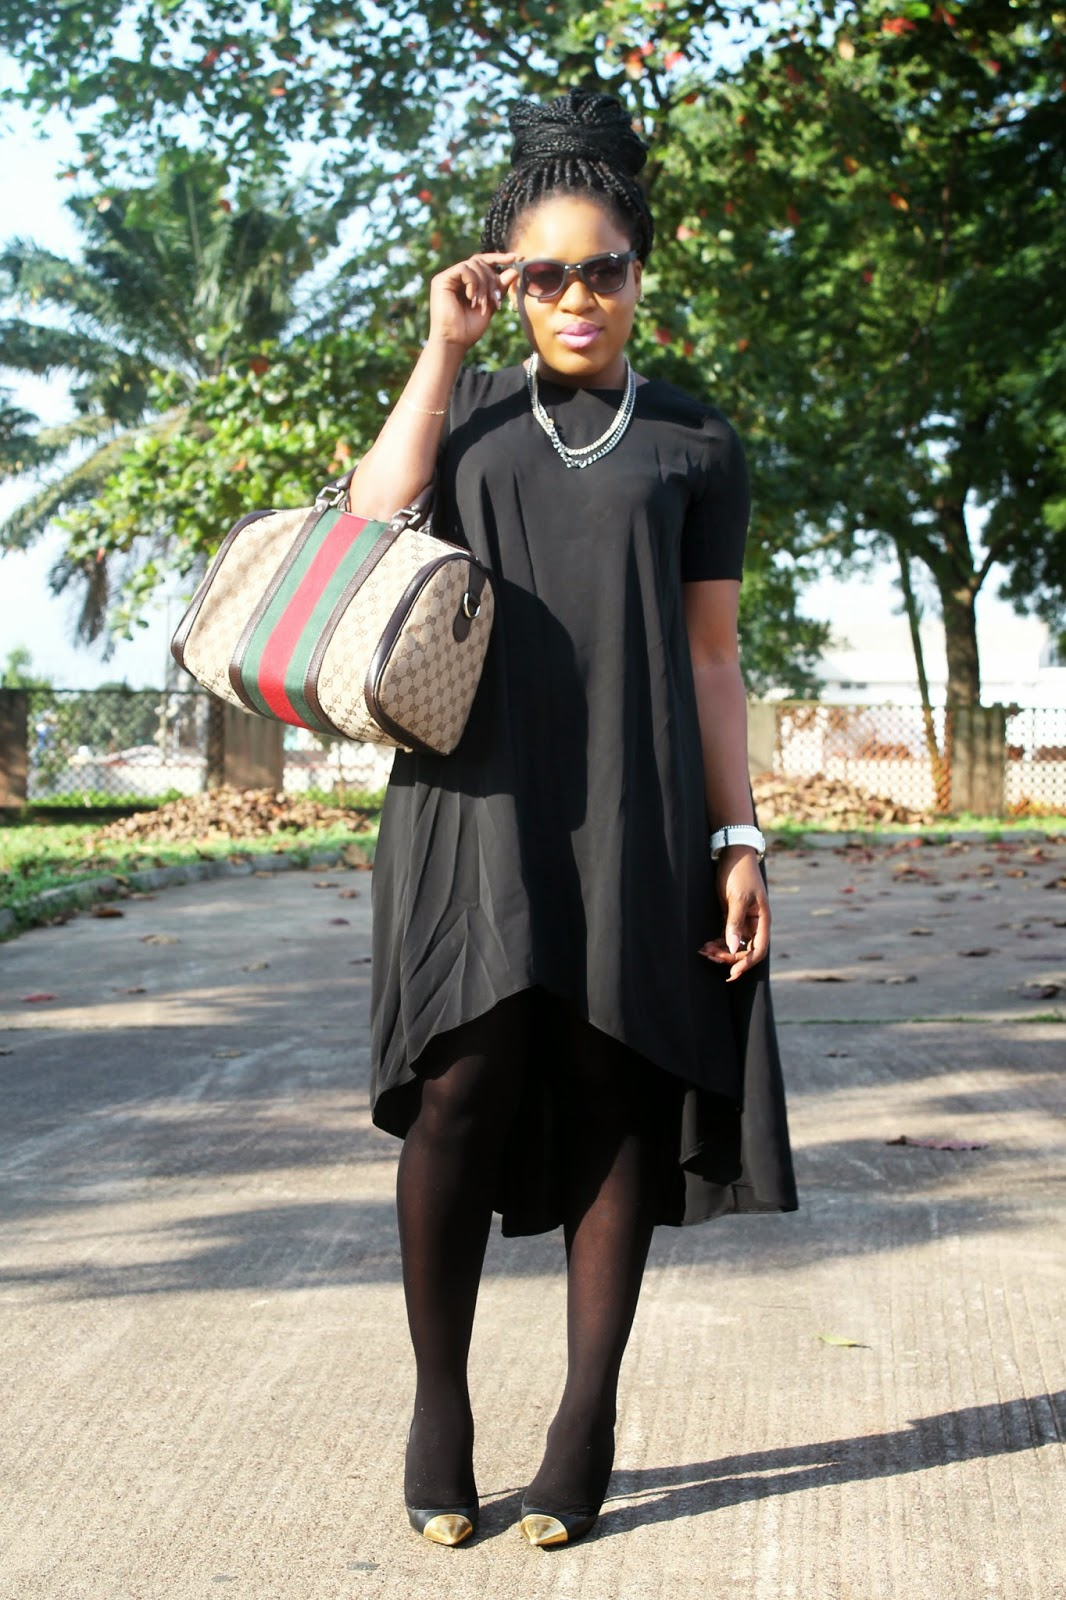 Nigerian Police Fashion And Style